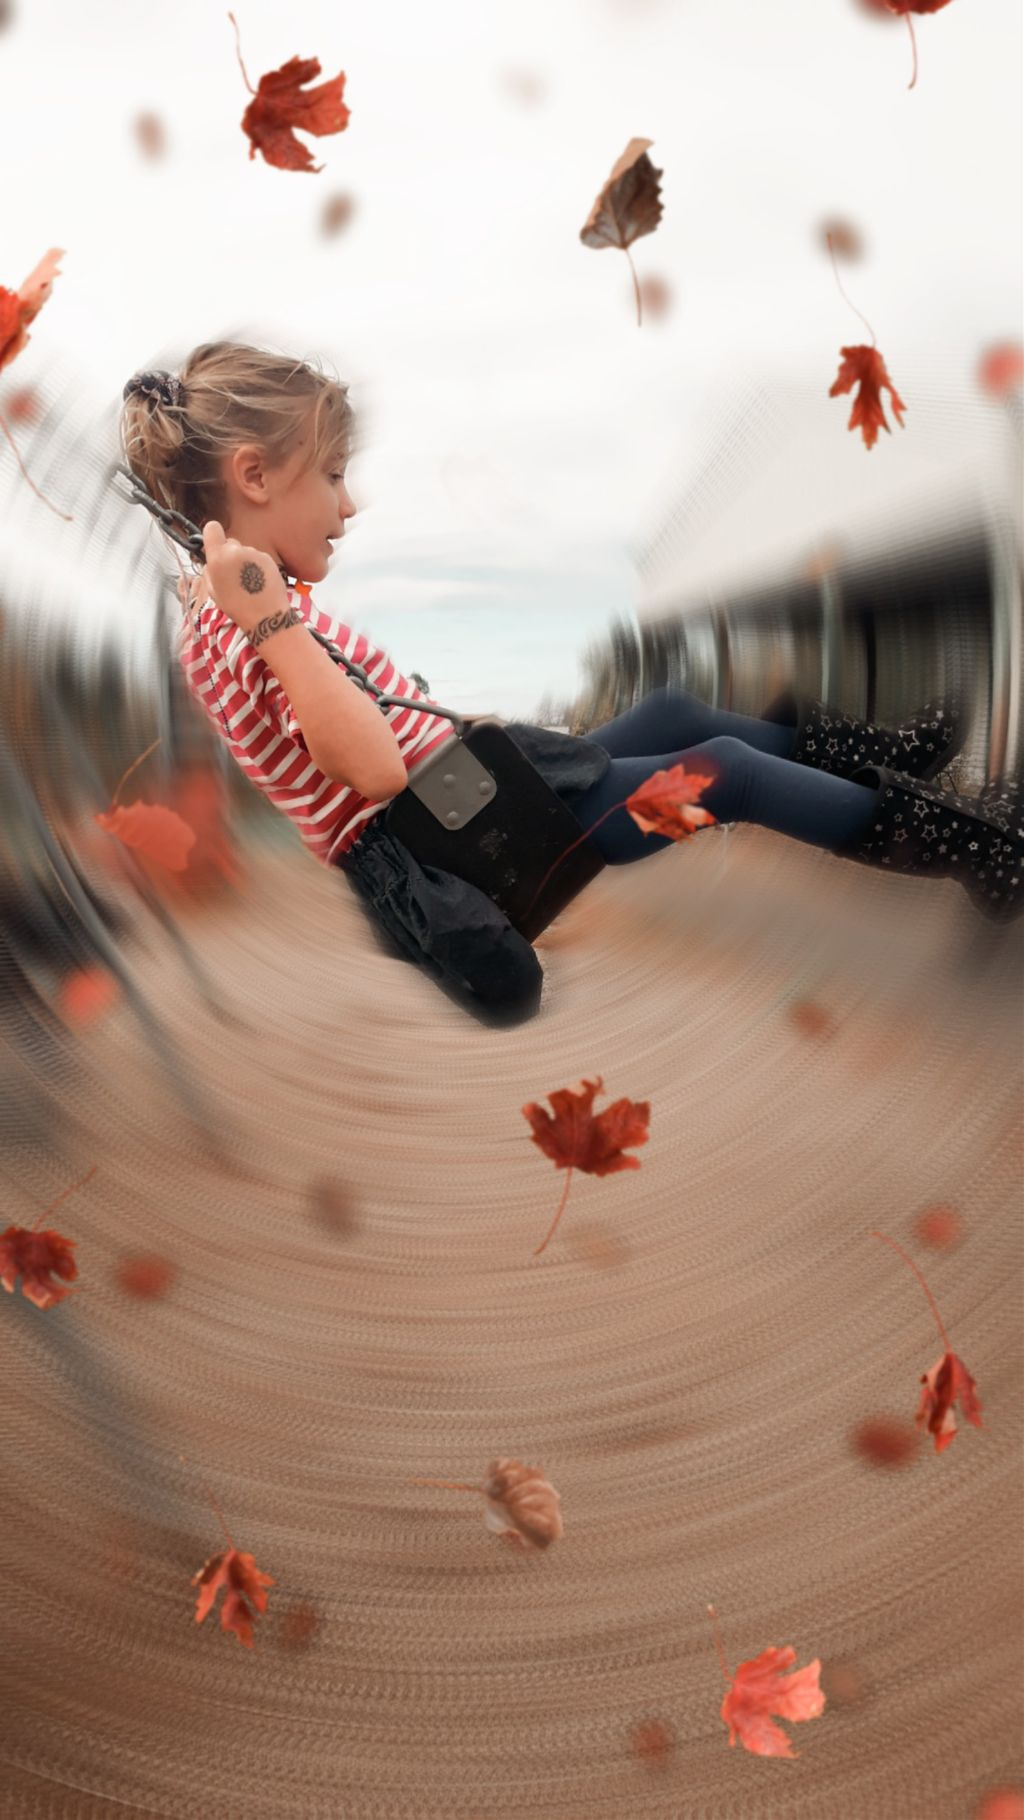 My #girl ✌🖤🍂 Thanks for the fabulous sticker my dear friend💓 #autumn #leaves #blureffect #swing #playground #freetoedit